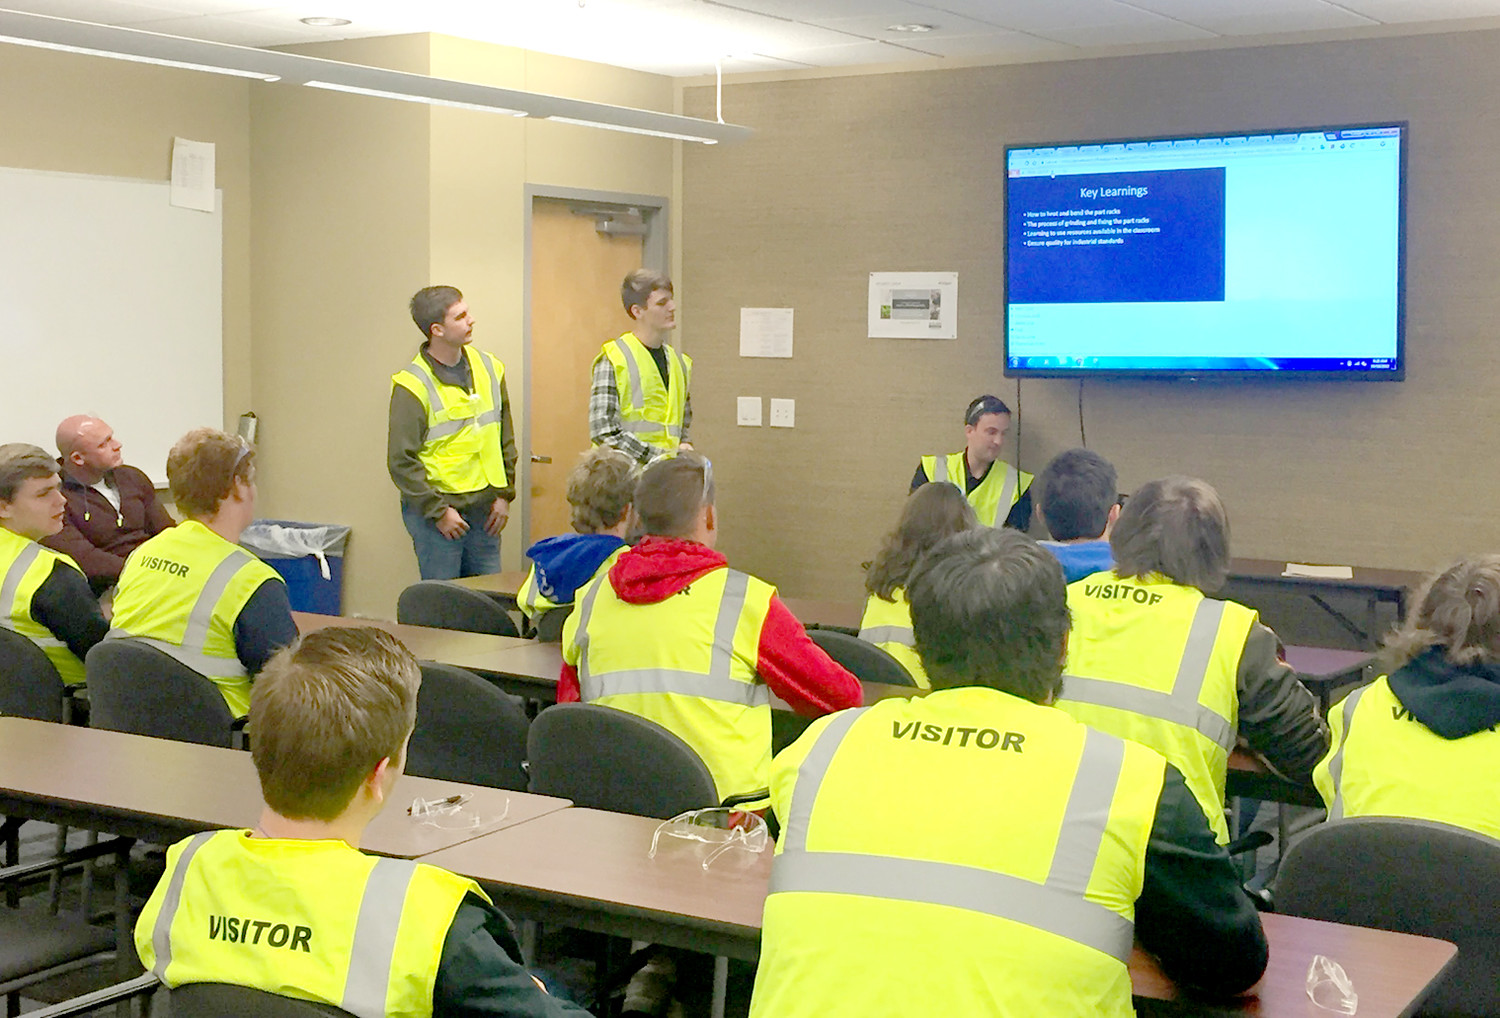 STUDENTS from Bradley Central High School present the results of a welding project to representatives of Whirlpool while visiting the company's Cleveland facility.